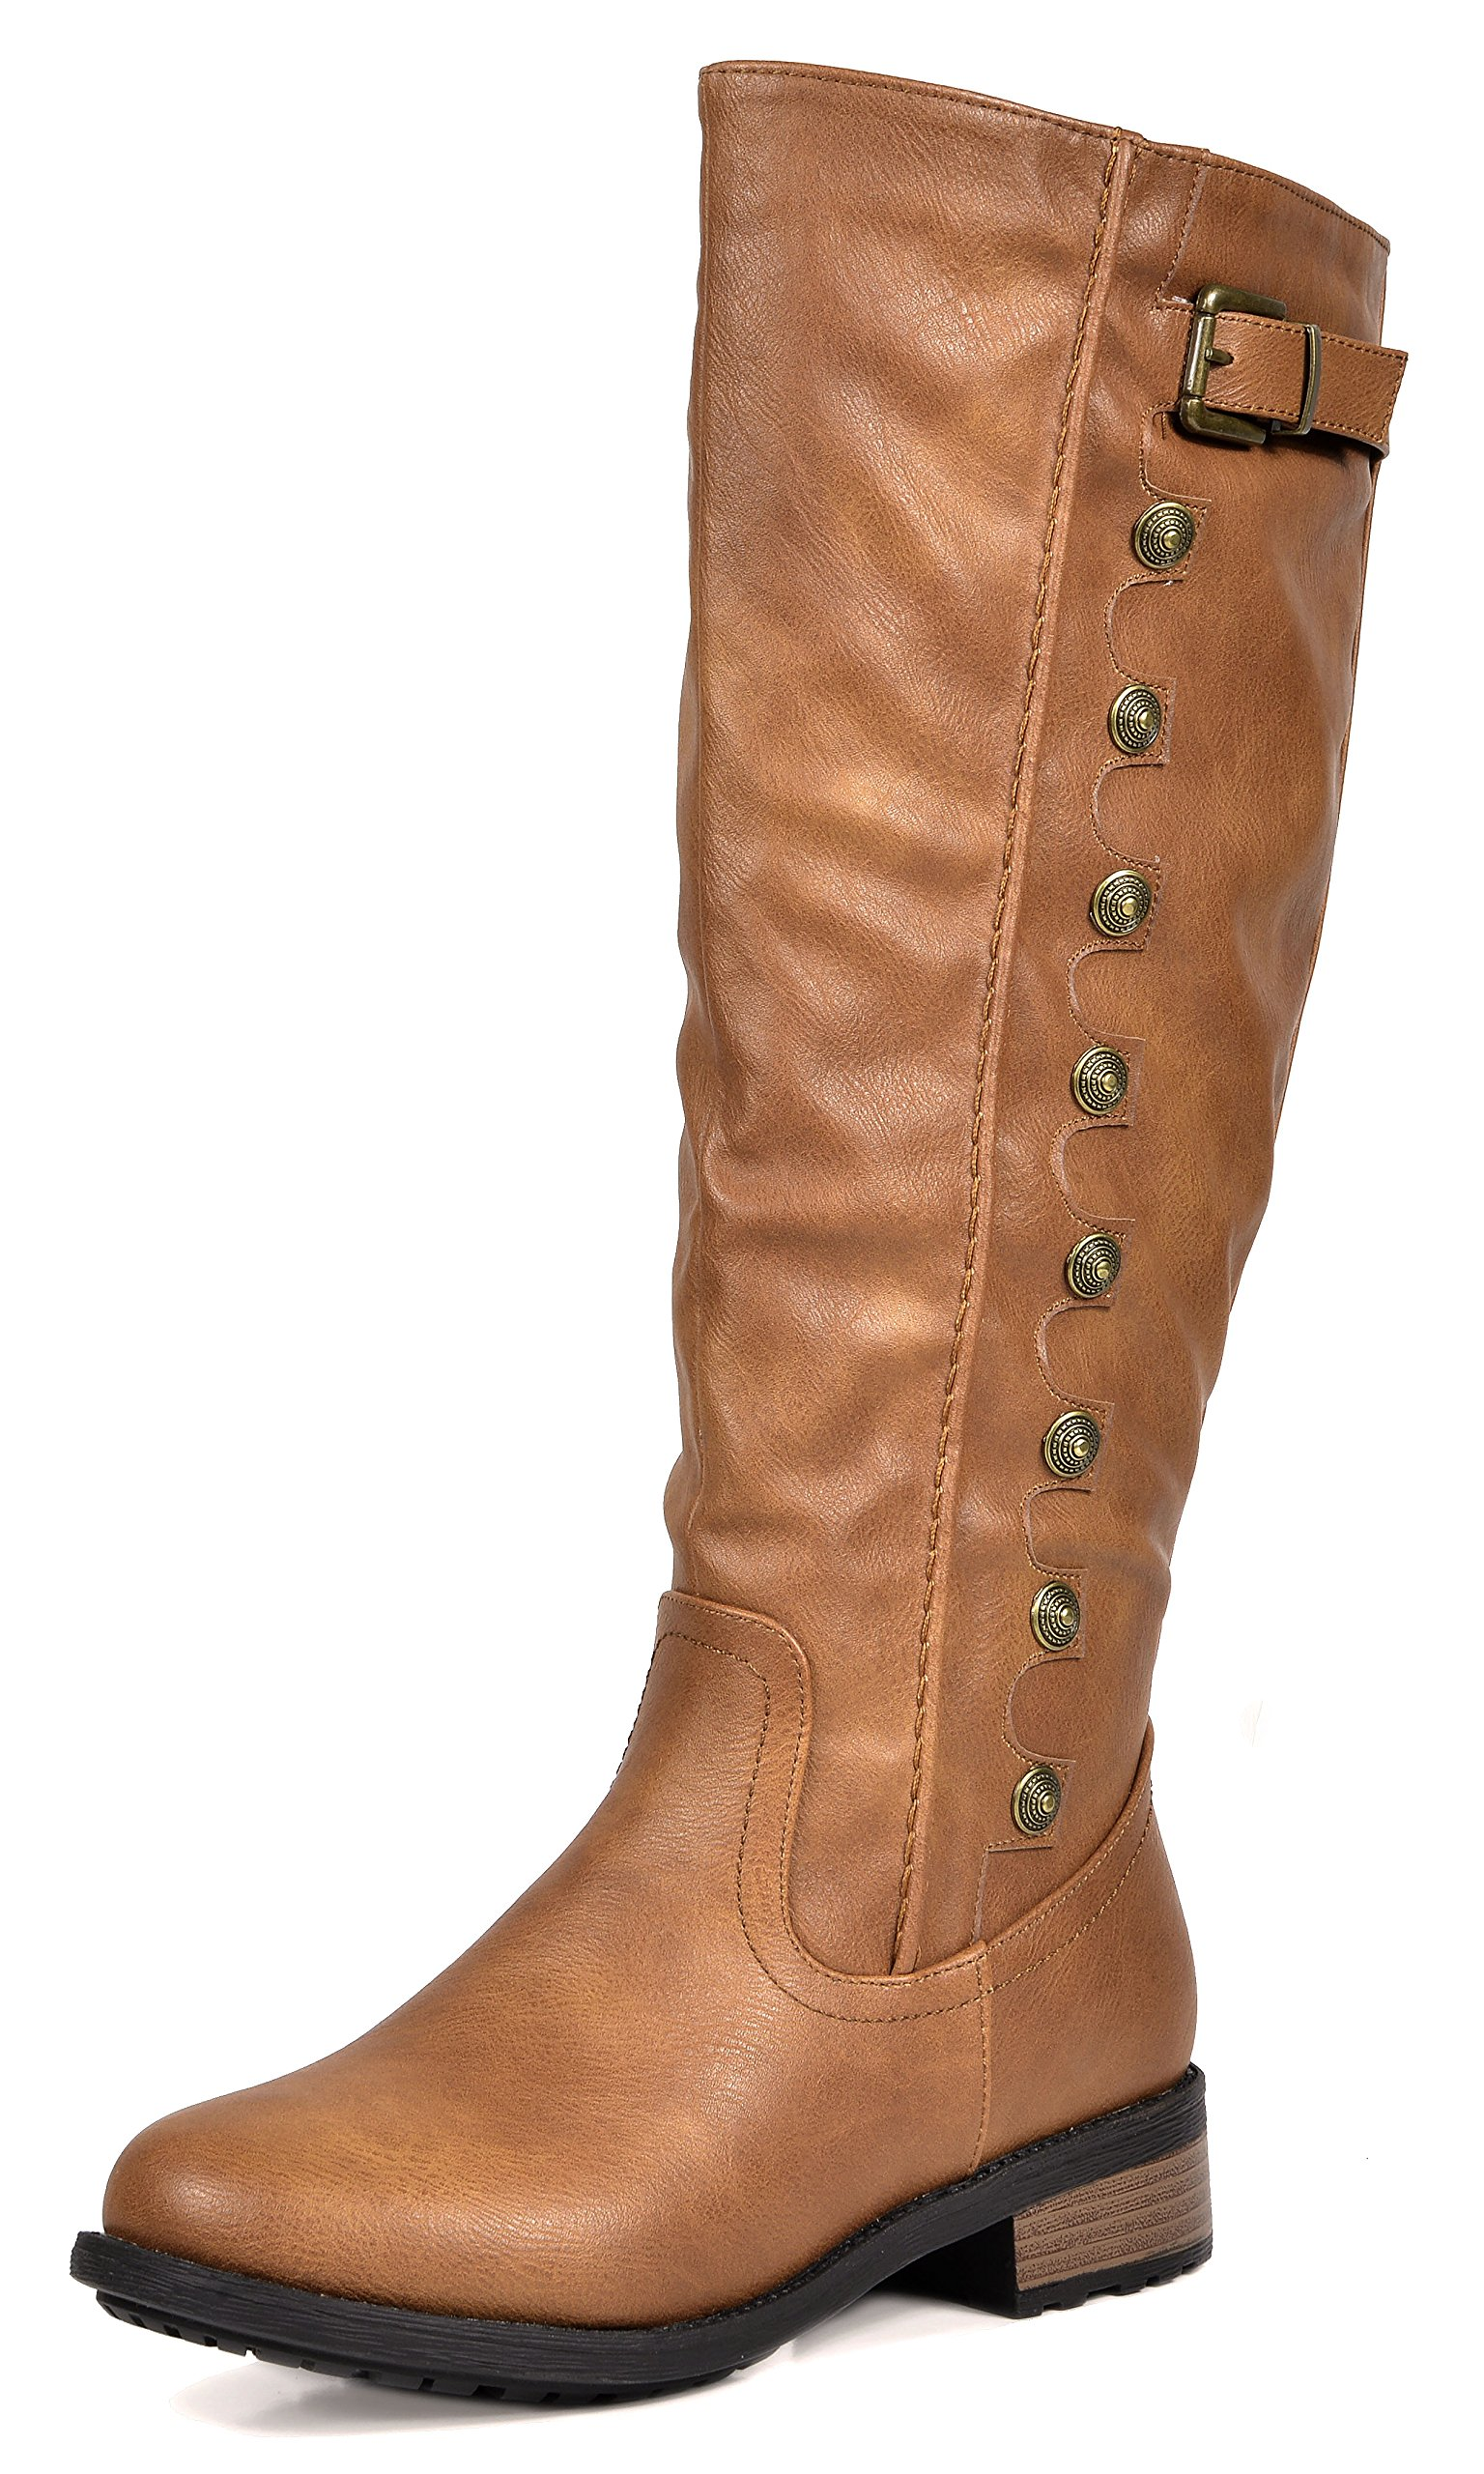 DREAM PAIRS Women's Army Camel Pu Leather Knee High Winter Riding Boots Wide Calf Size 11 M US